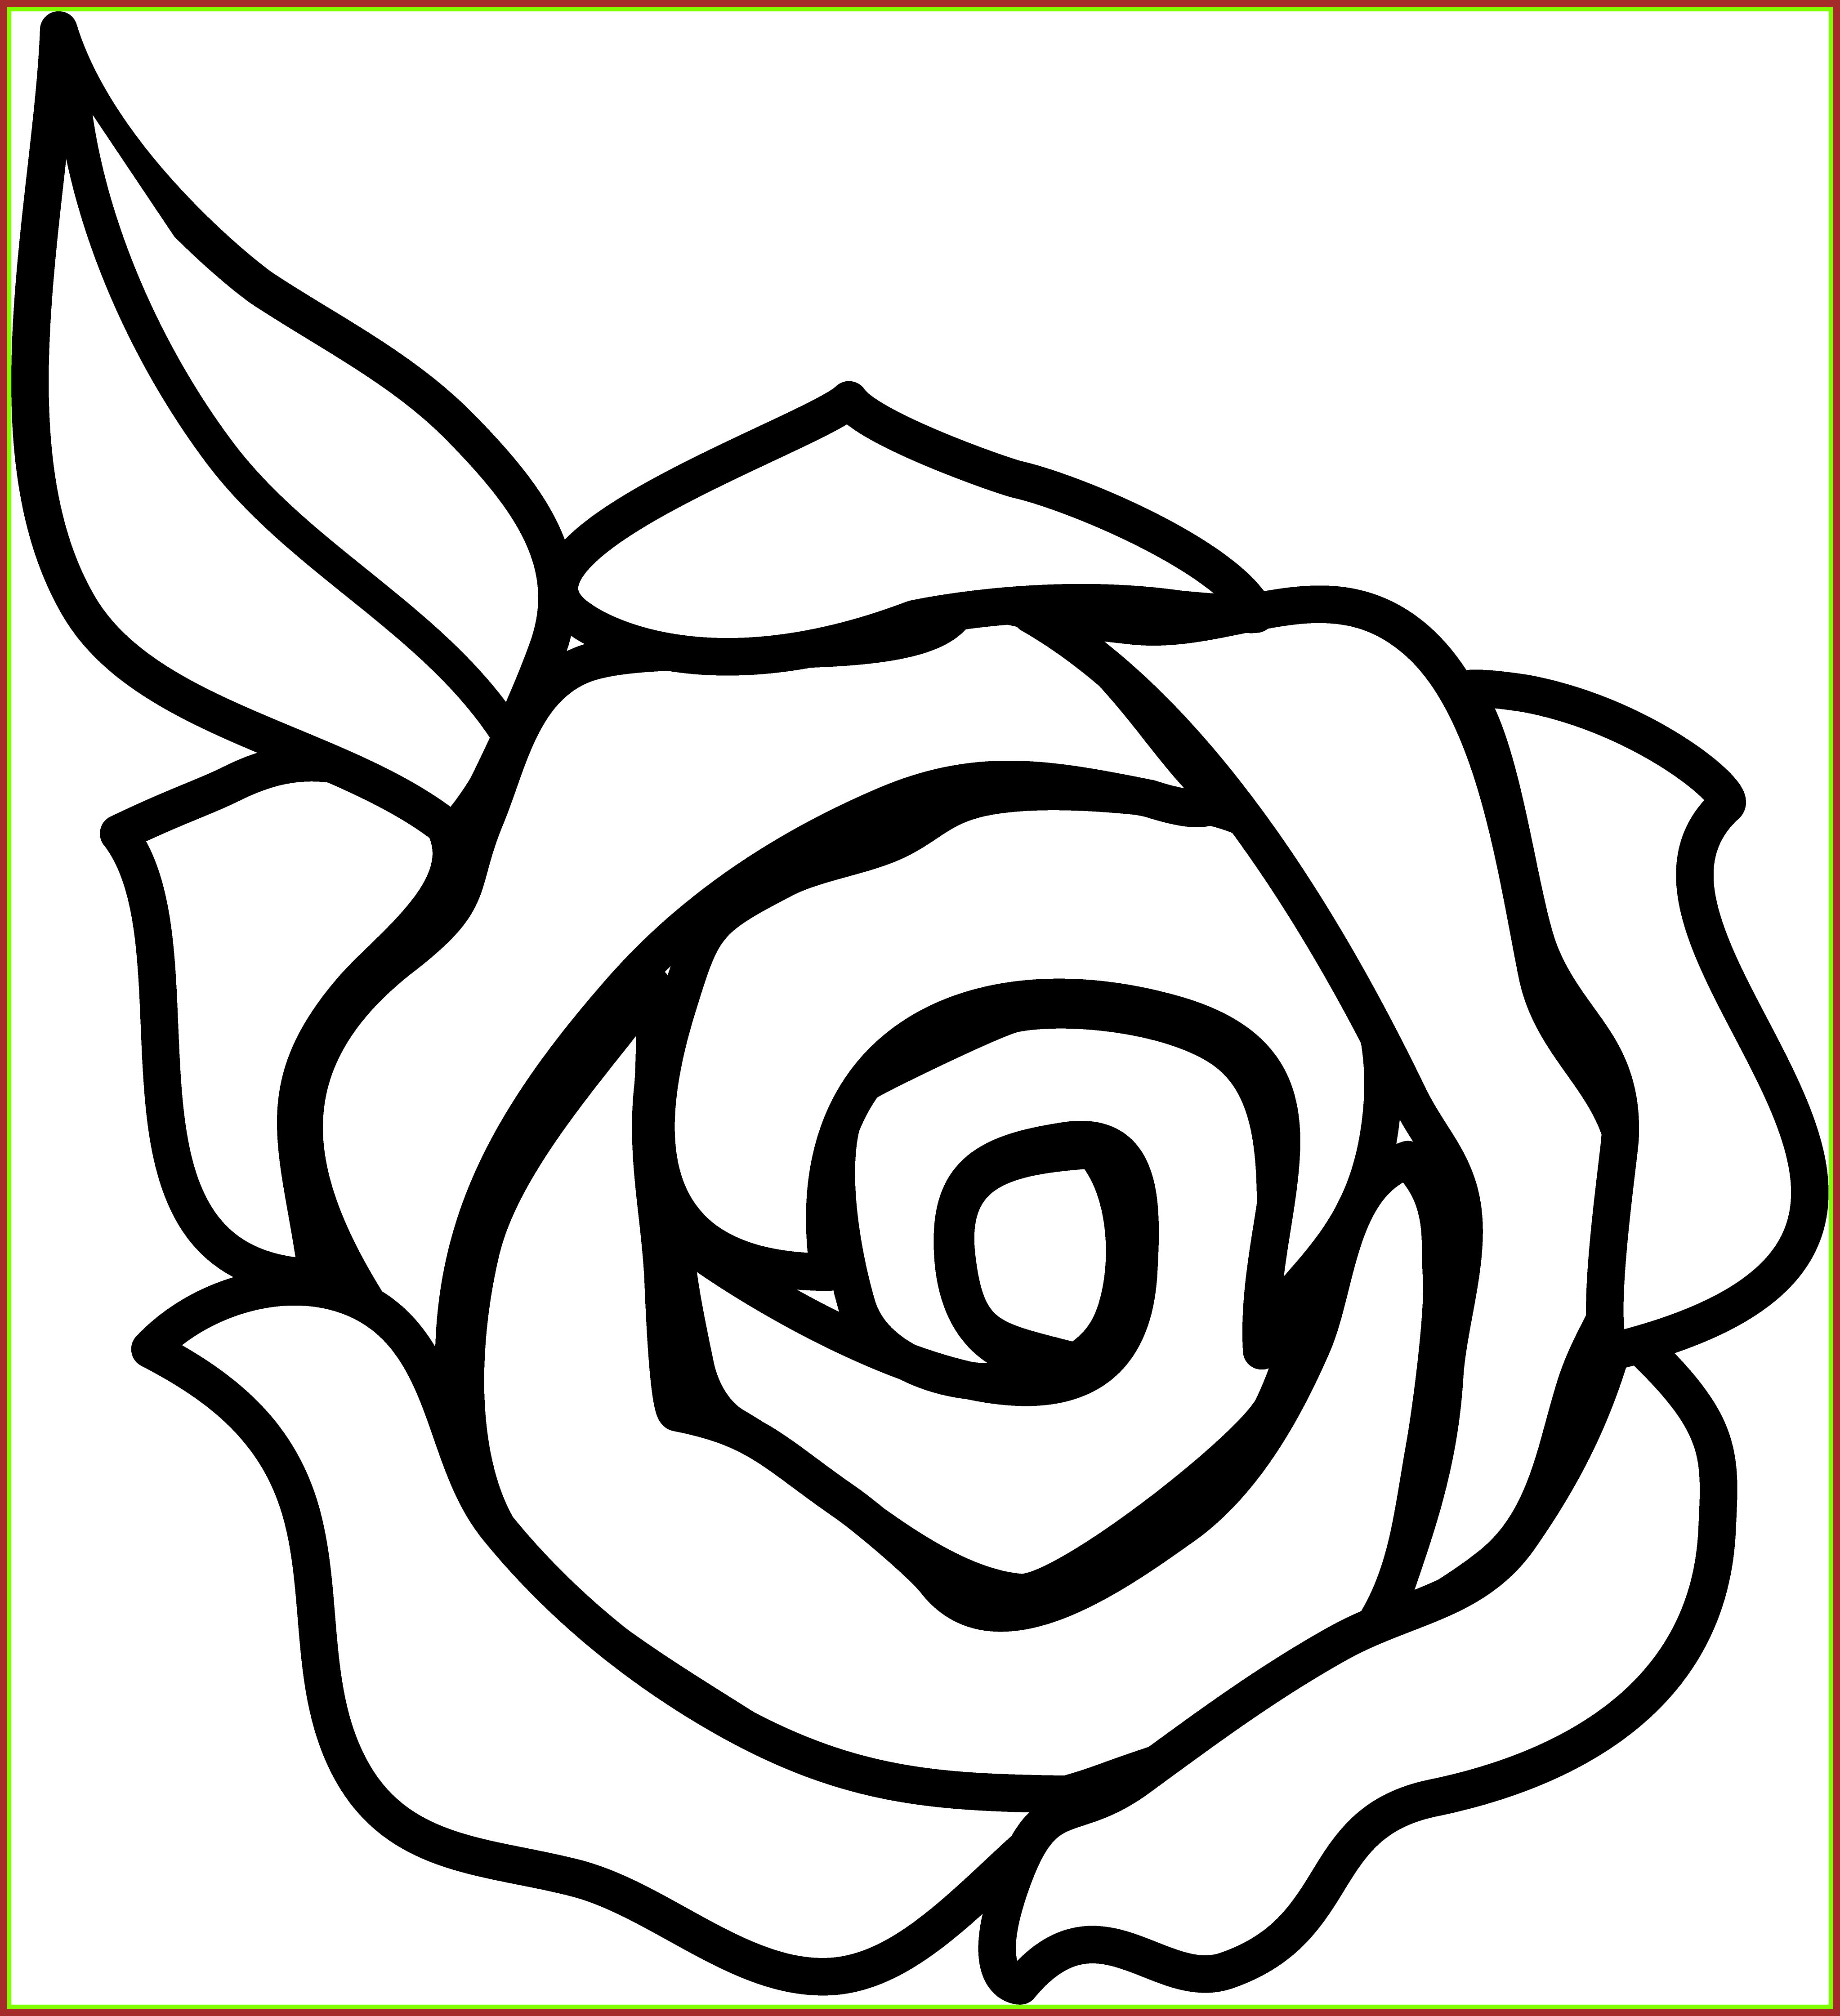 svg royalty free Incredible great flower black. A clipart rose